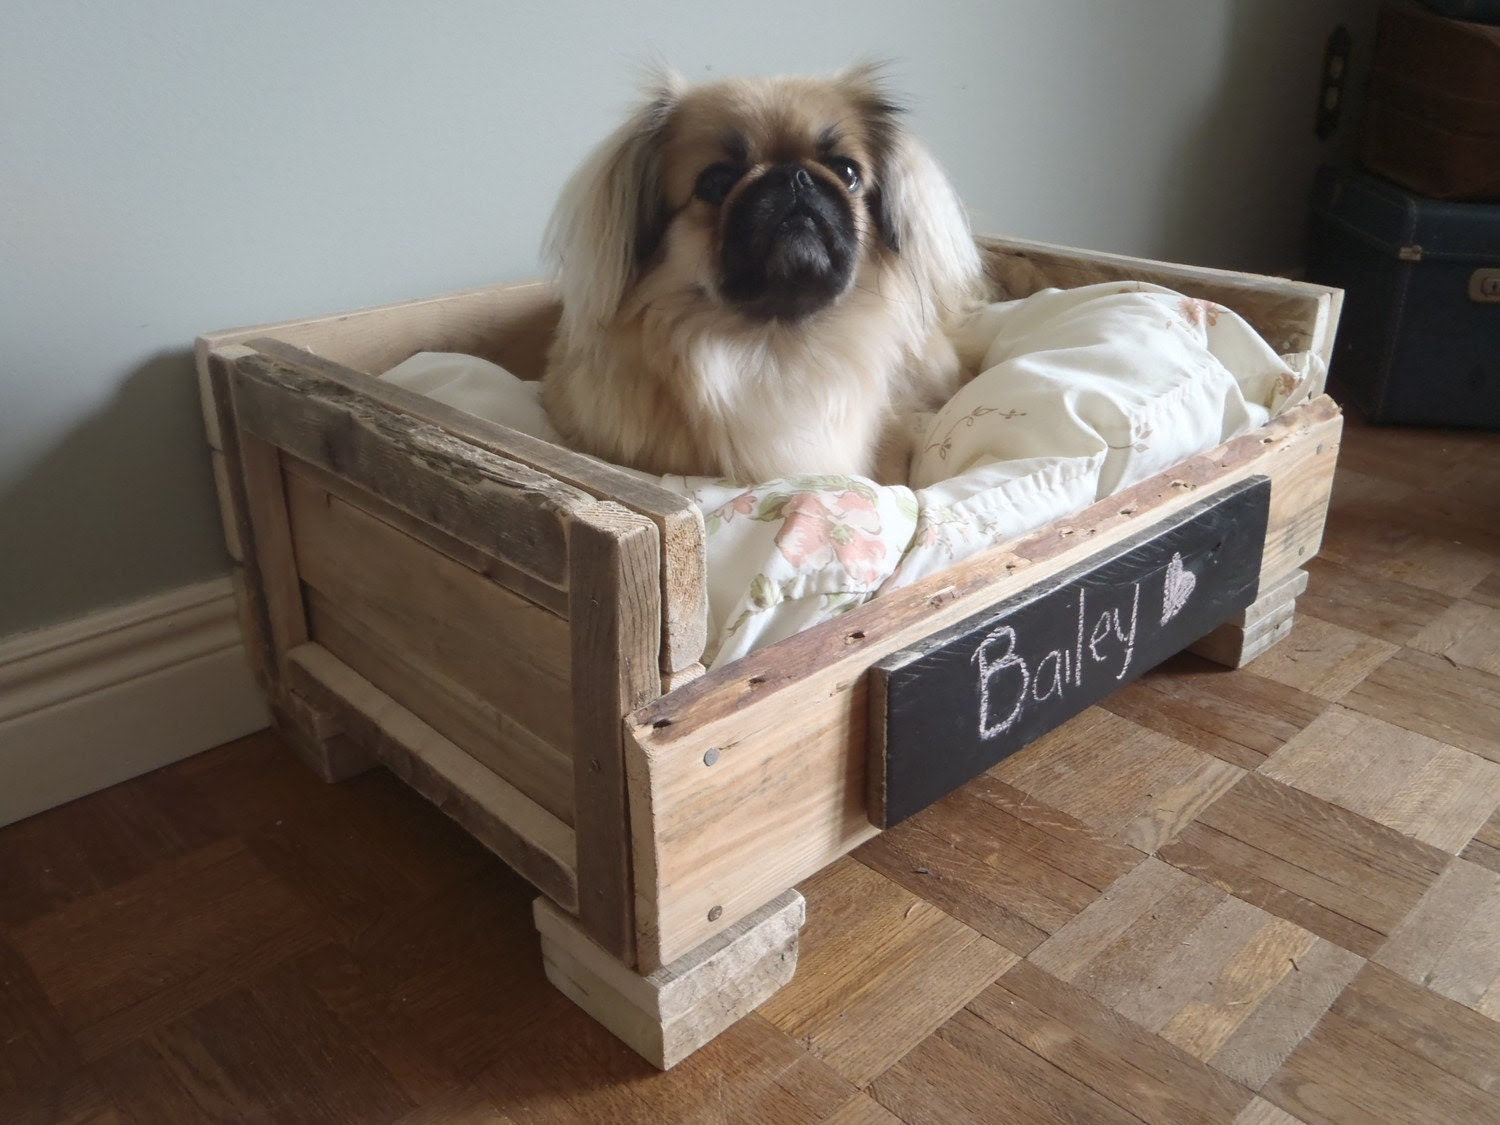 Reclaimed Wood Pet Bed - Natural and White Floral - 2 Dollars goes to LAPS animal protection